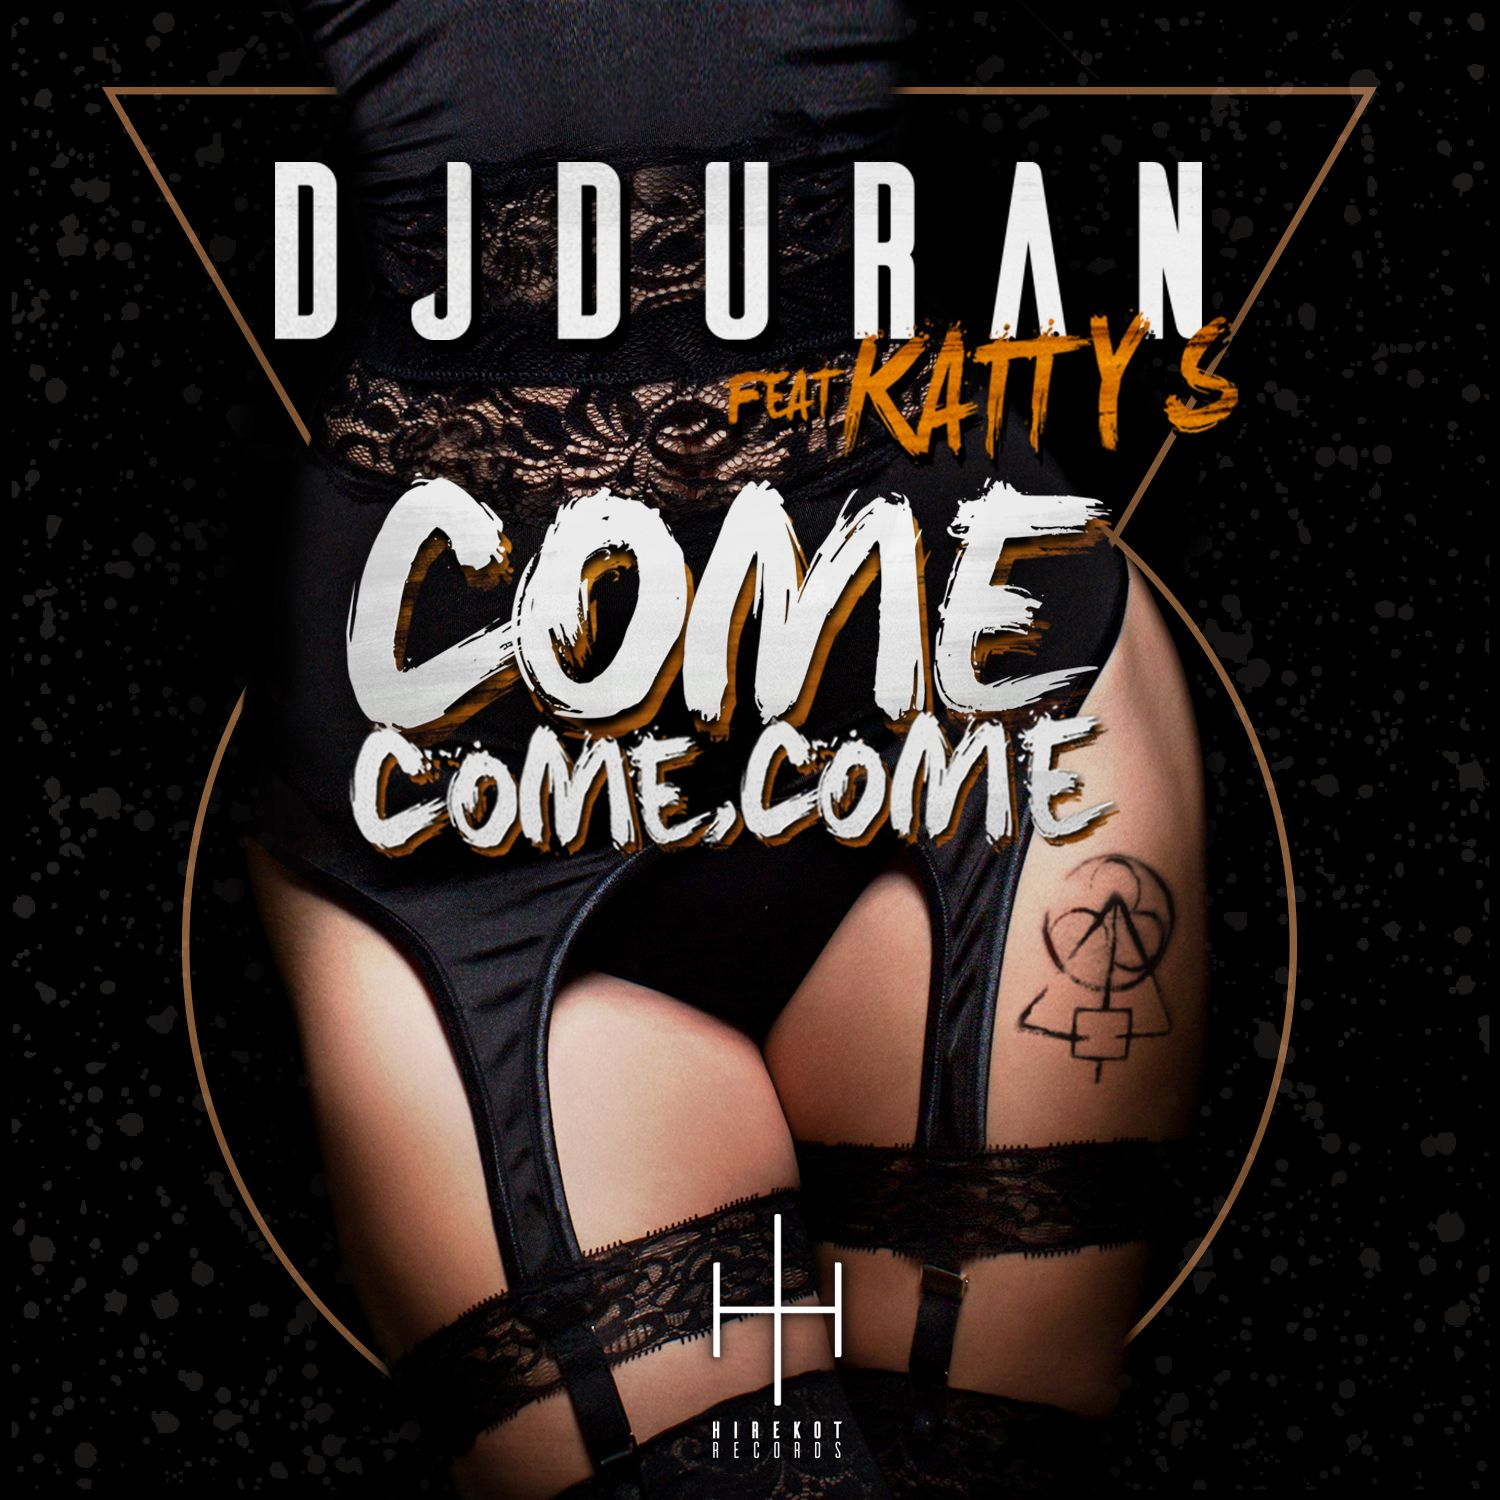 DJDURAN FT KATTY S. - COME, COME, COME